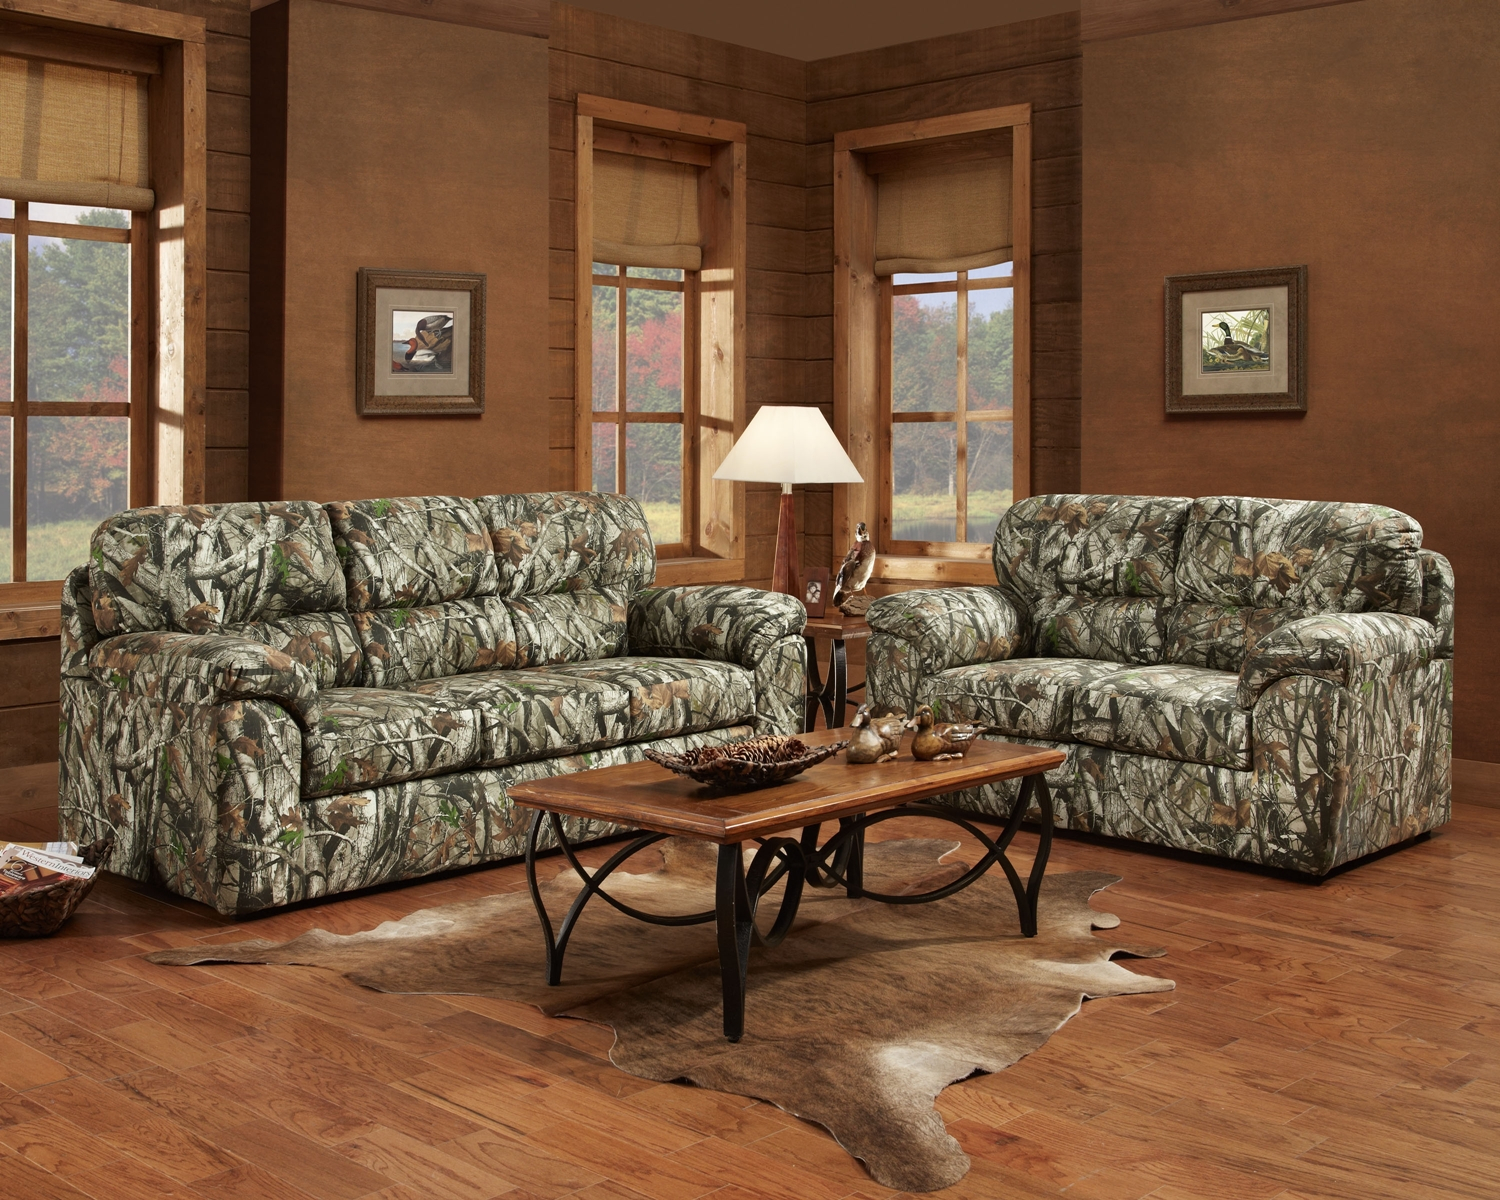 Cozy Brown Living Room Interior Design With Mossy Oak Camouflage inside Camouflage Living Room Sets